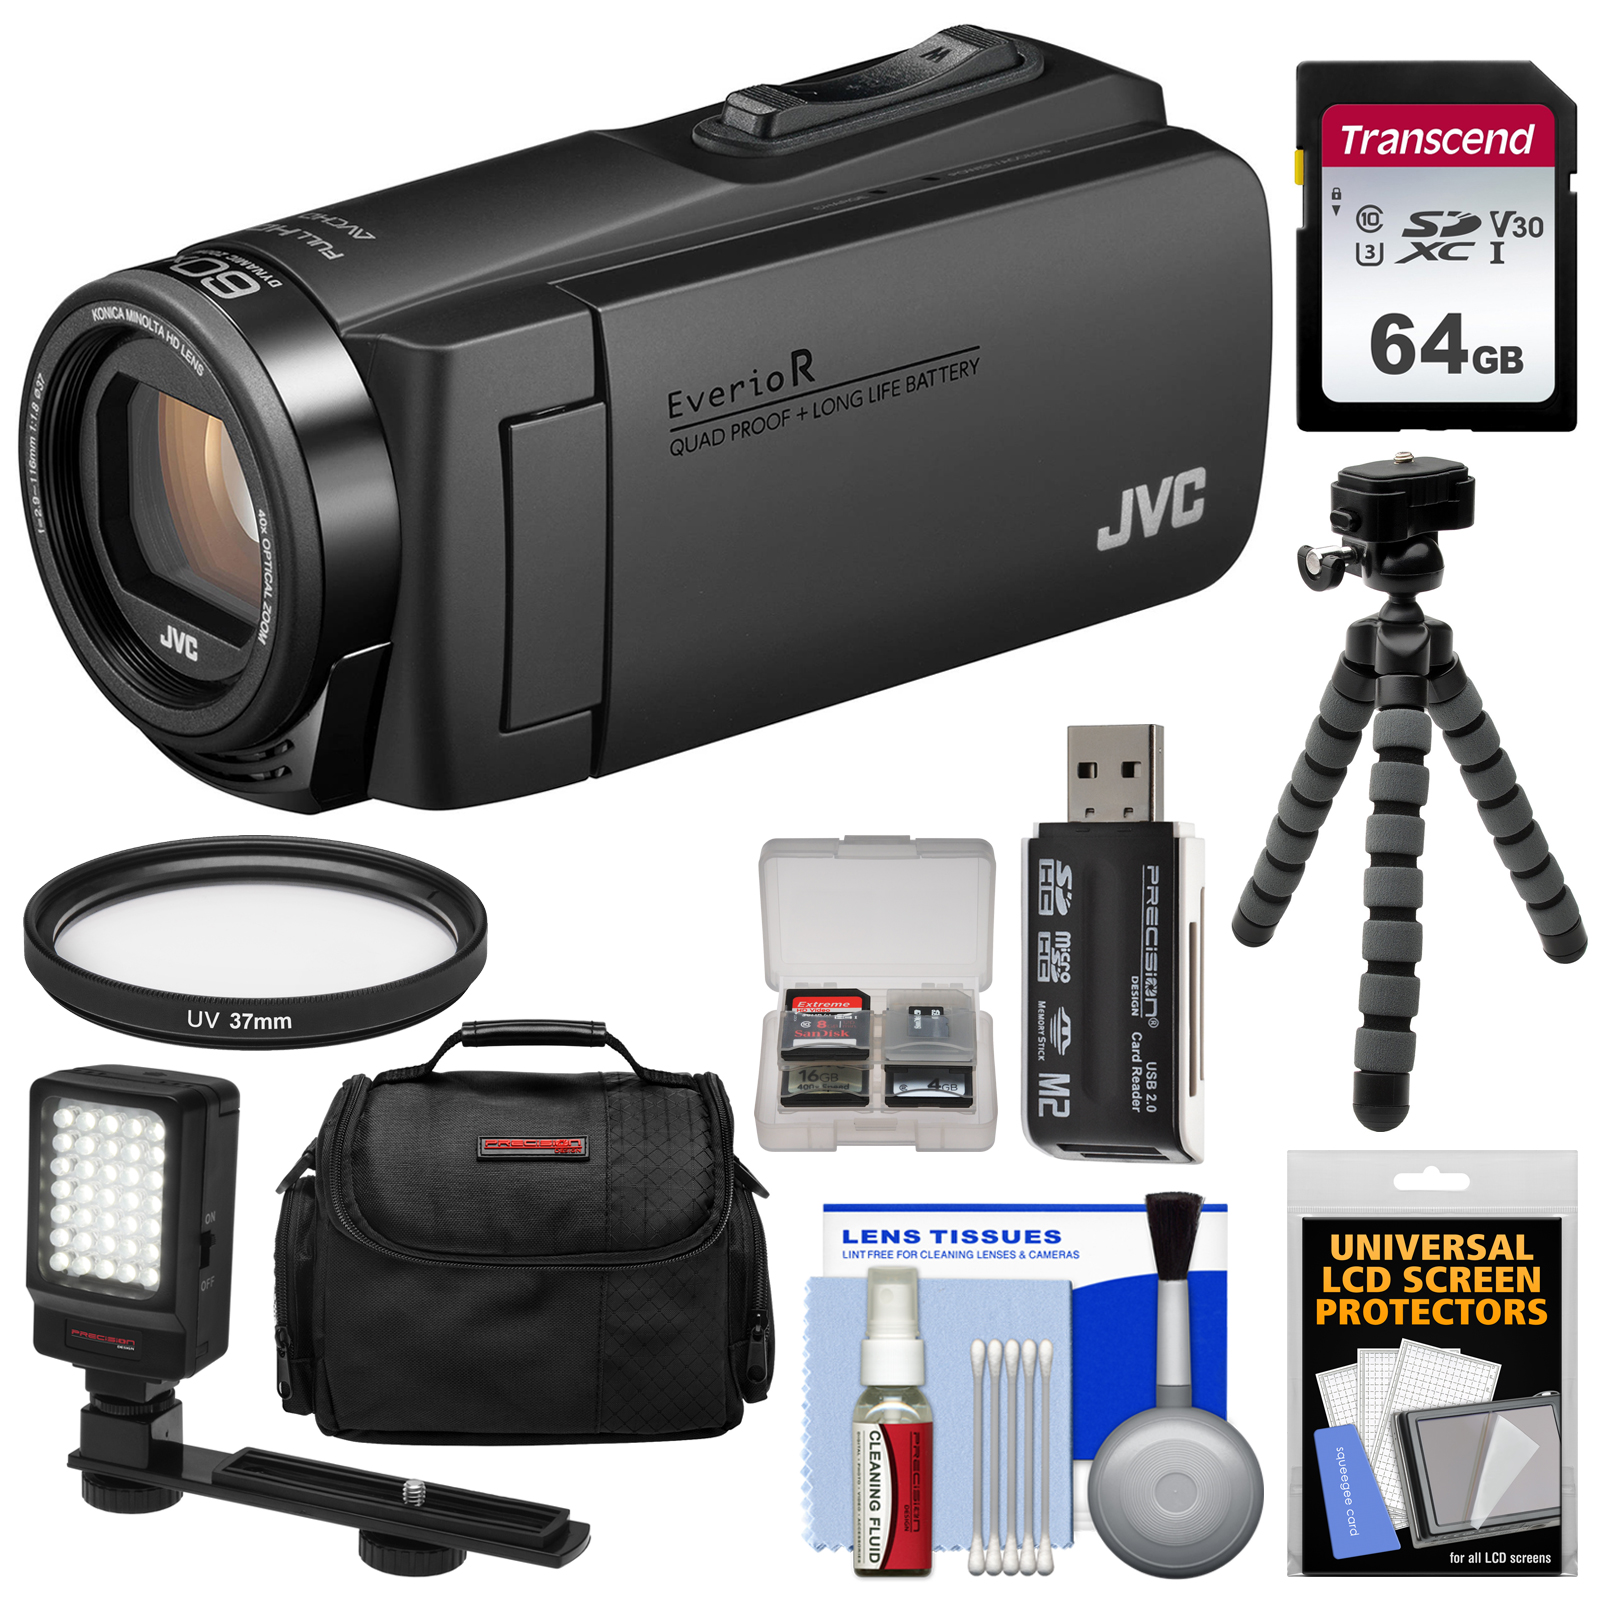 JVC Everio GZ-R460 Quad Proof 1080p HD Video Camera Camcorder (Black) with 64GB Card + LED Light + Case + Tripod + Kit